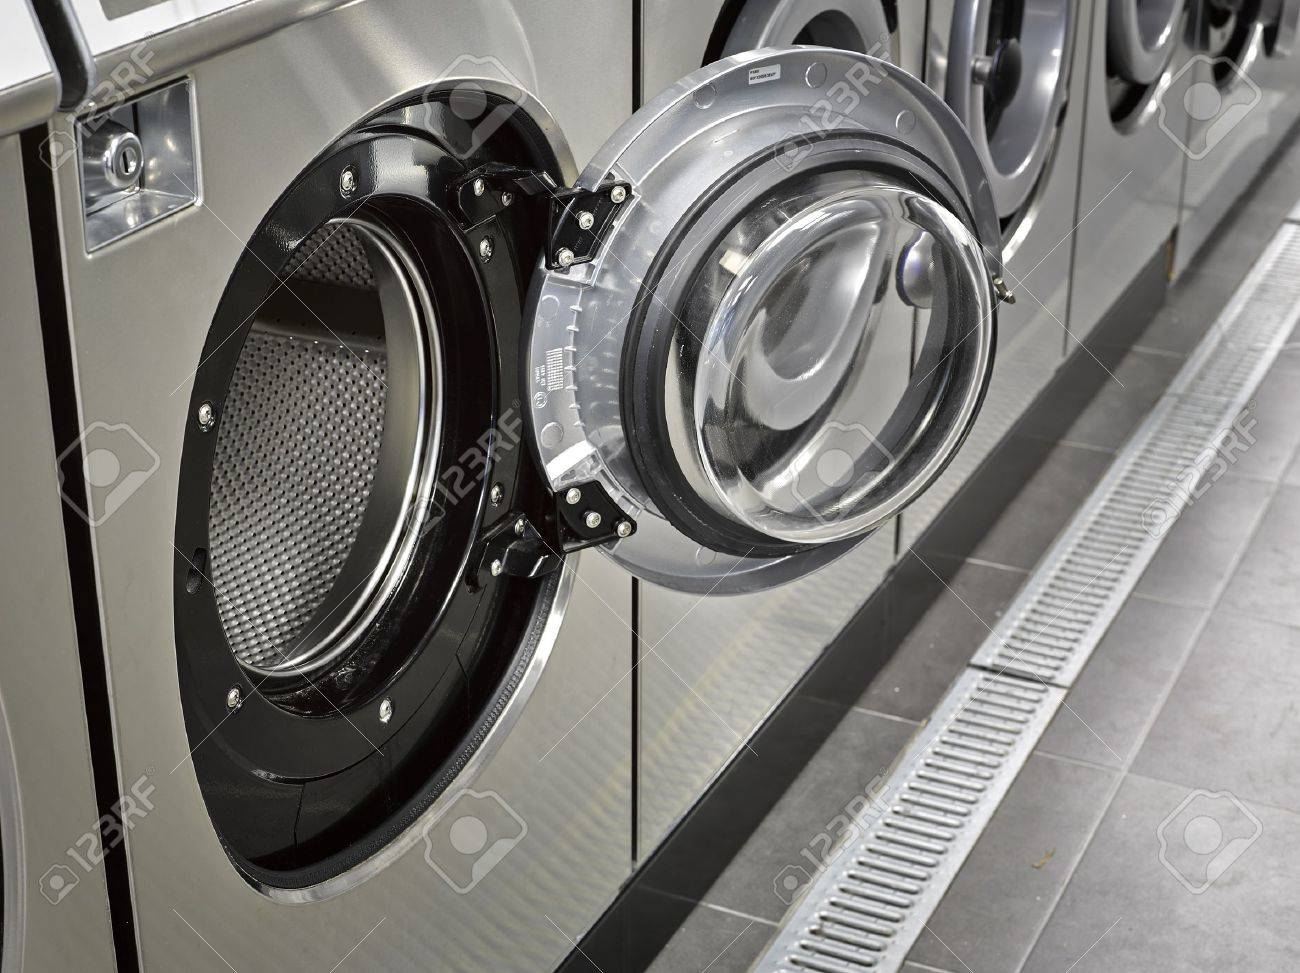 A row of industrial washing machines in a public laundromat Standard-Bild - 16813445